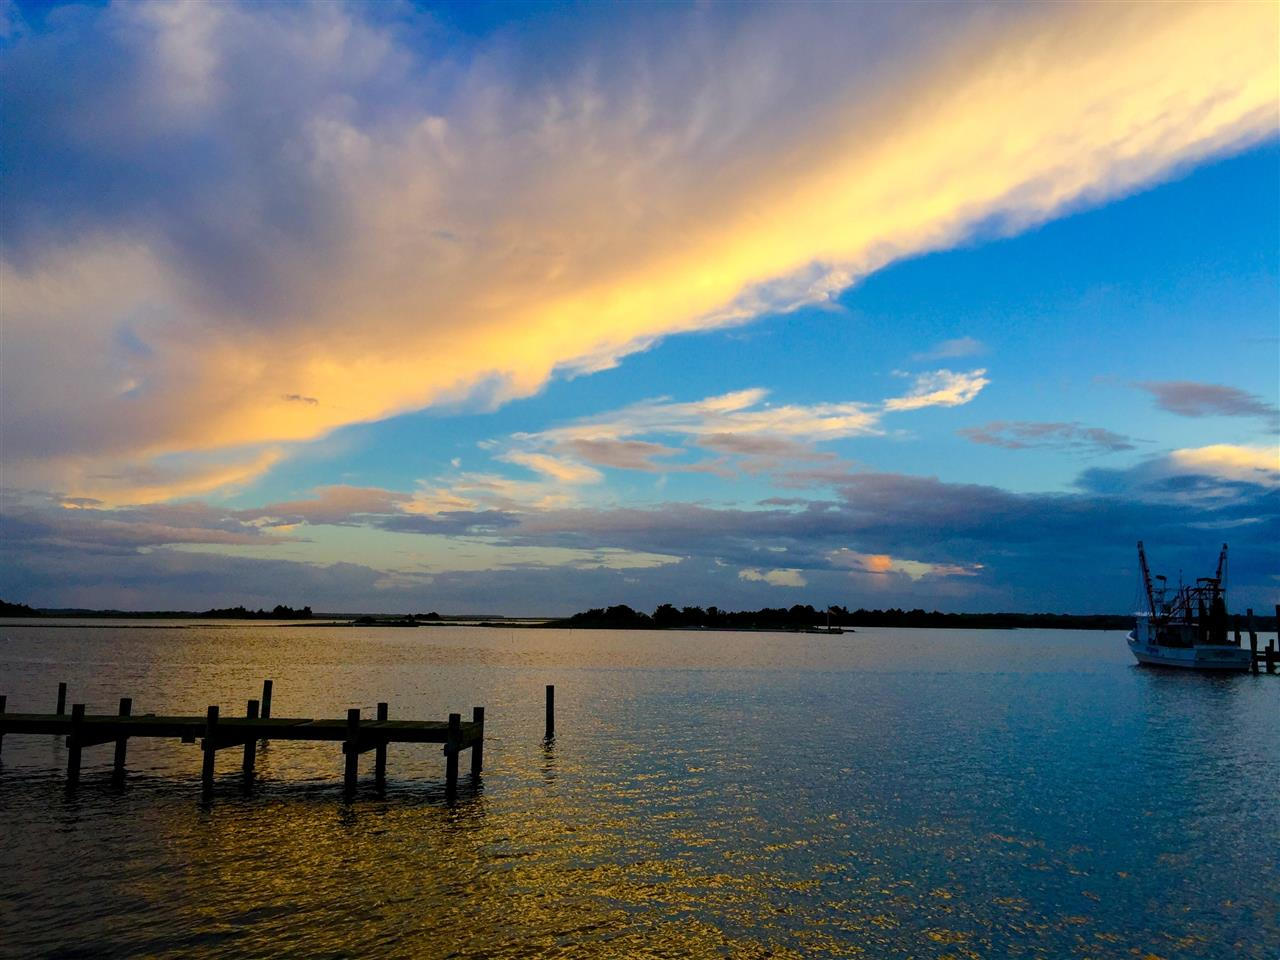 Sunset over Bogue Sound, Swansboro, NC